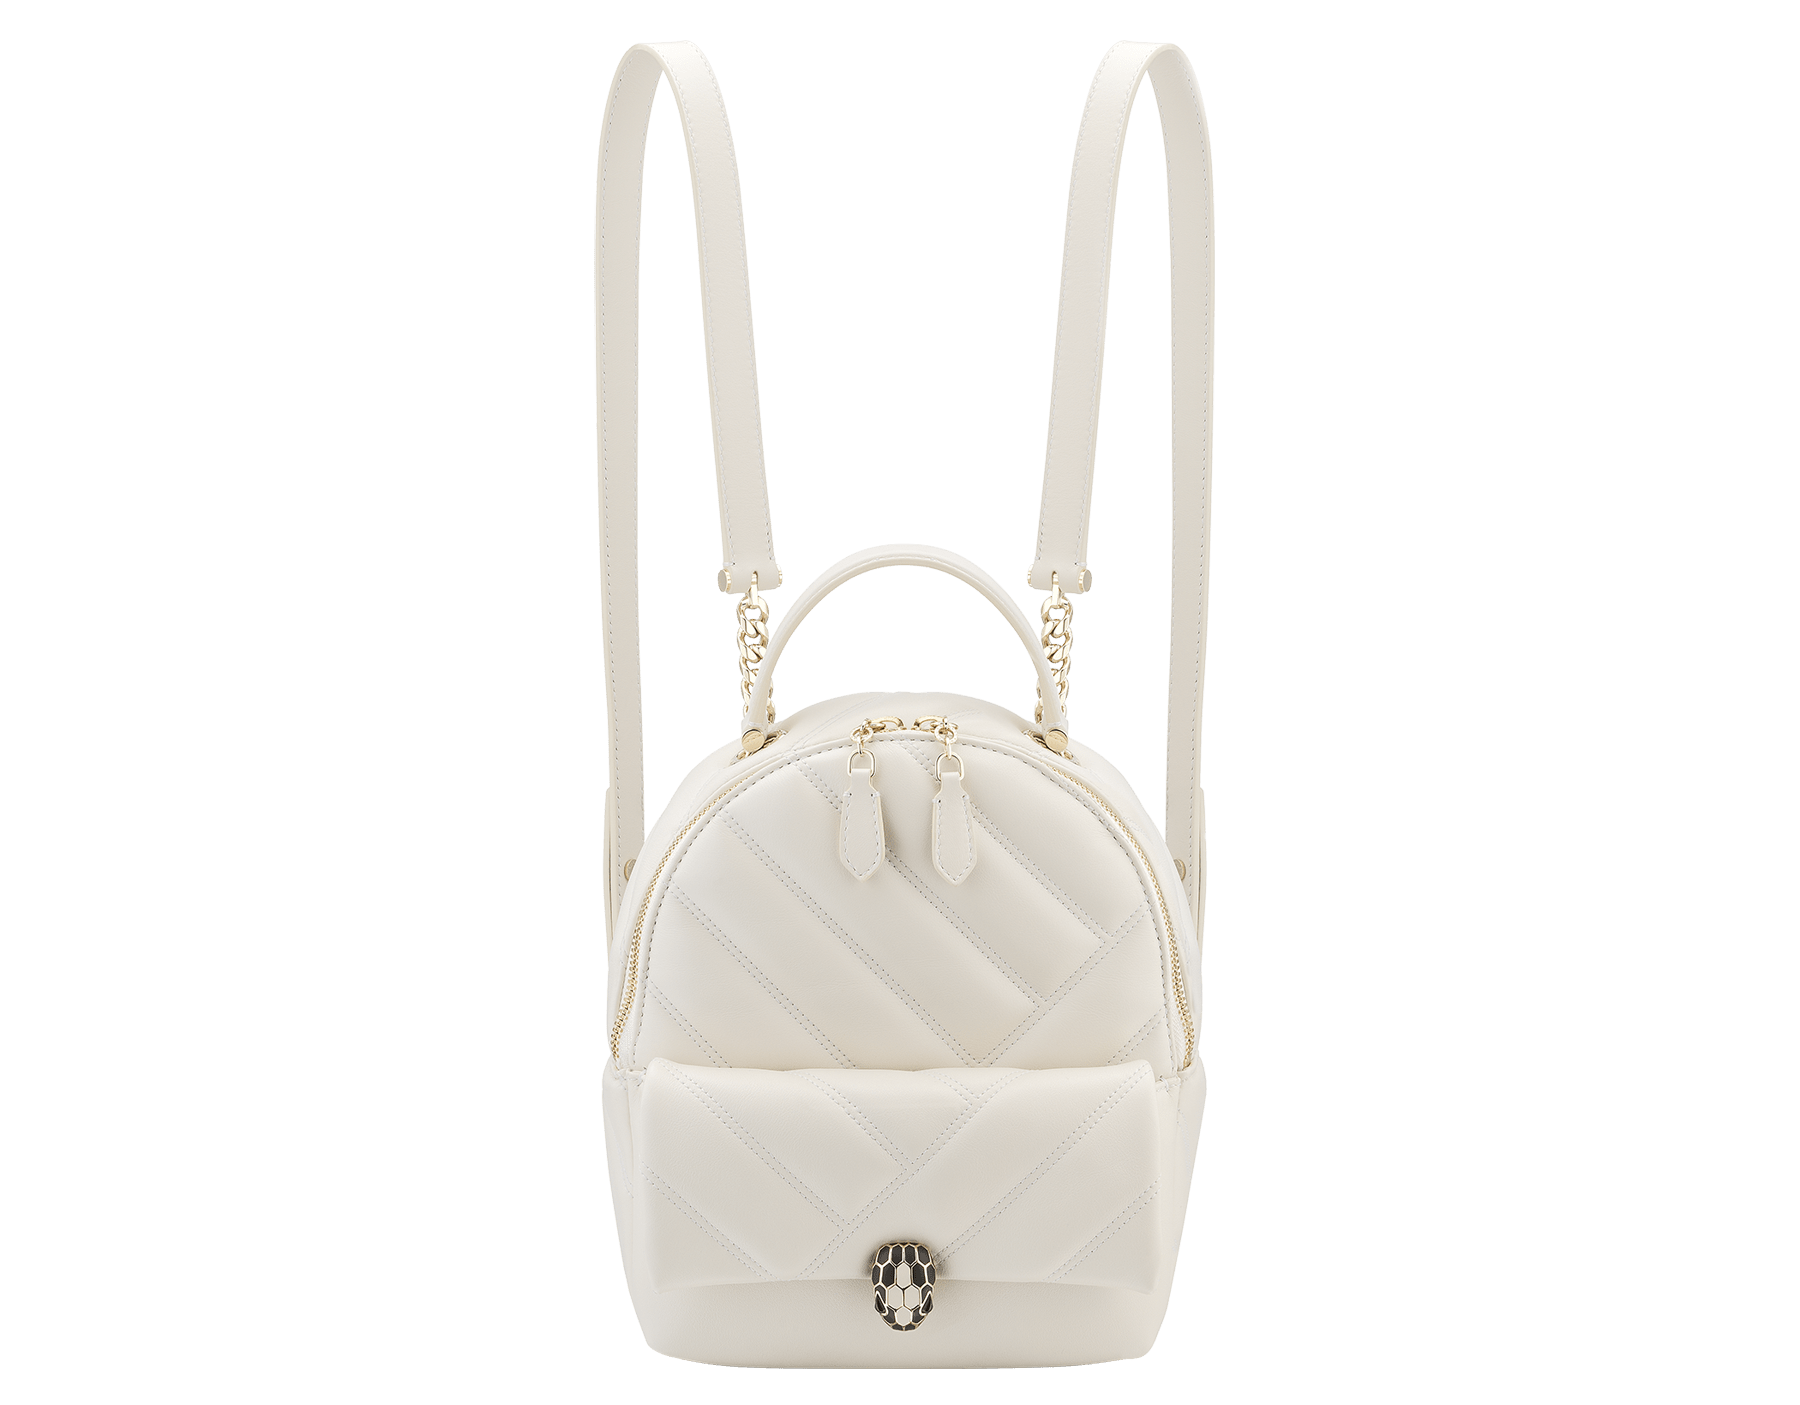 Bvlgari Serpenti Backpack